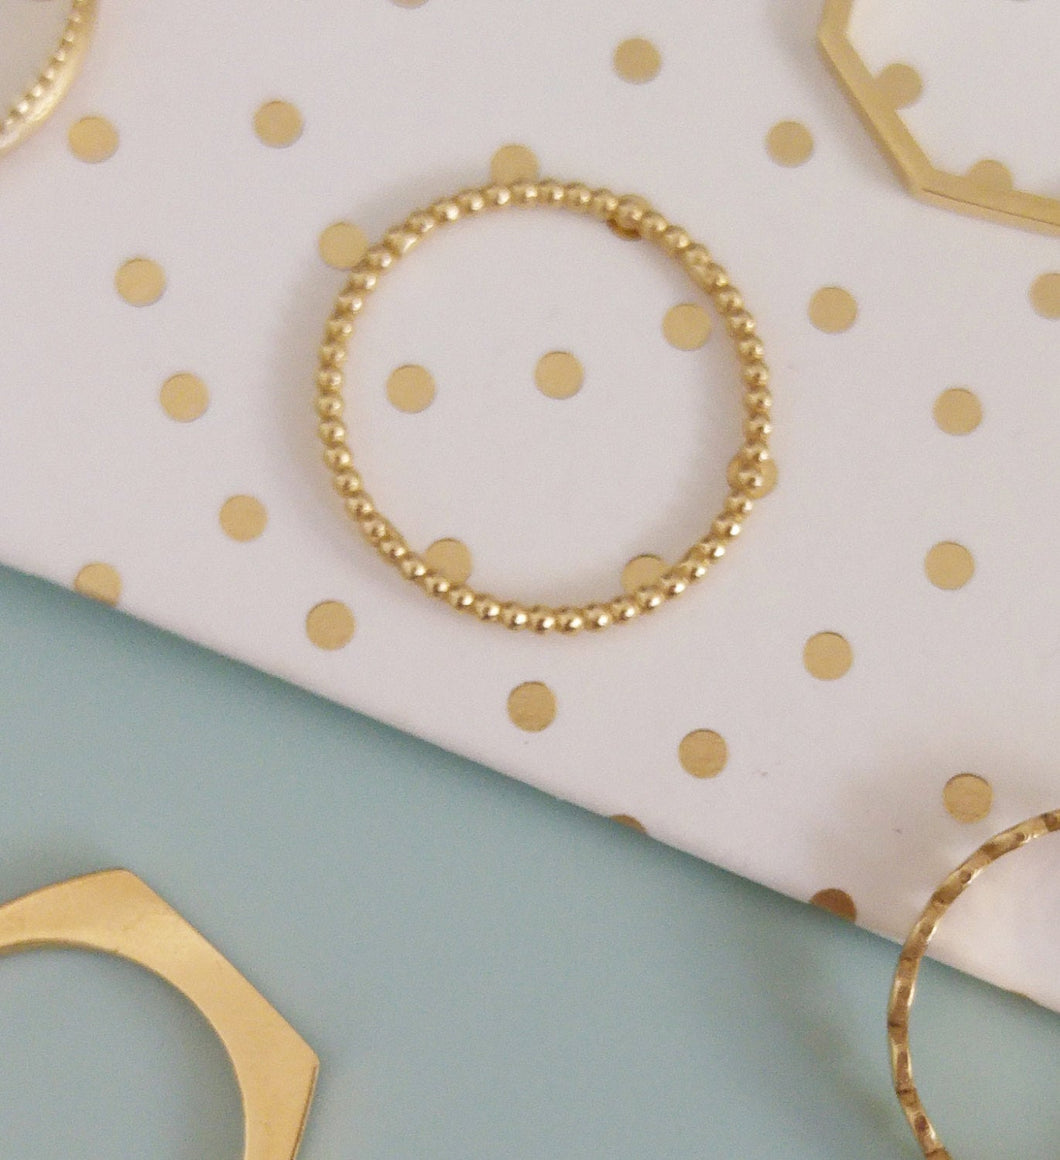 Ultra thin 14k gold dot ring, delicate gold ring for women, 14k gold stacking ring, gold baubble ring, connected dots ring